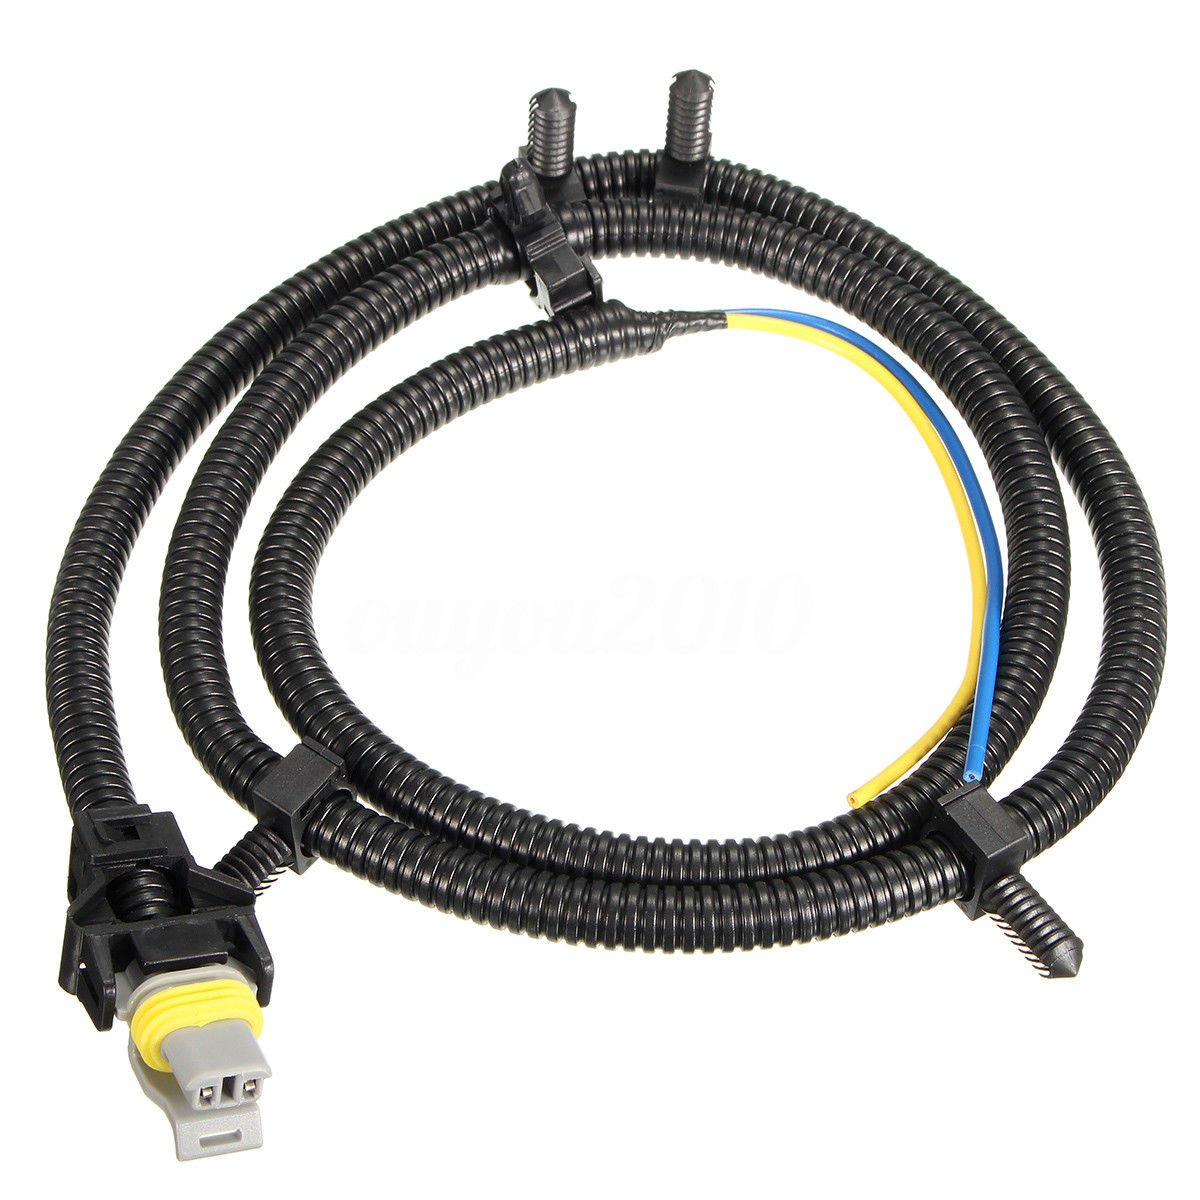 Amostek 1pc Abs Wheel Speed Sensor Wire Harness For Cadillac Srx Brake Wiring Buick Rendezvous Terraza Cts Deville Sts Chevrolet Impala Monte Carlo